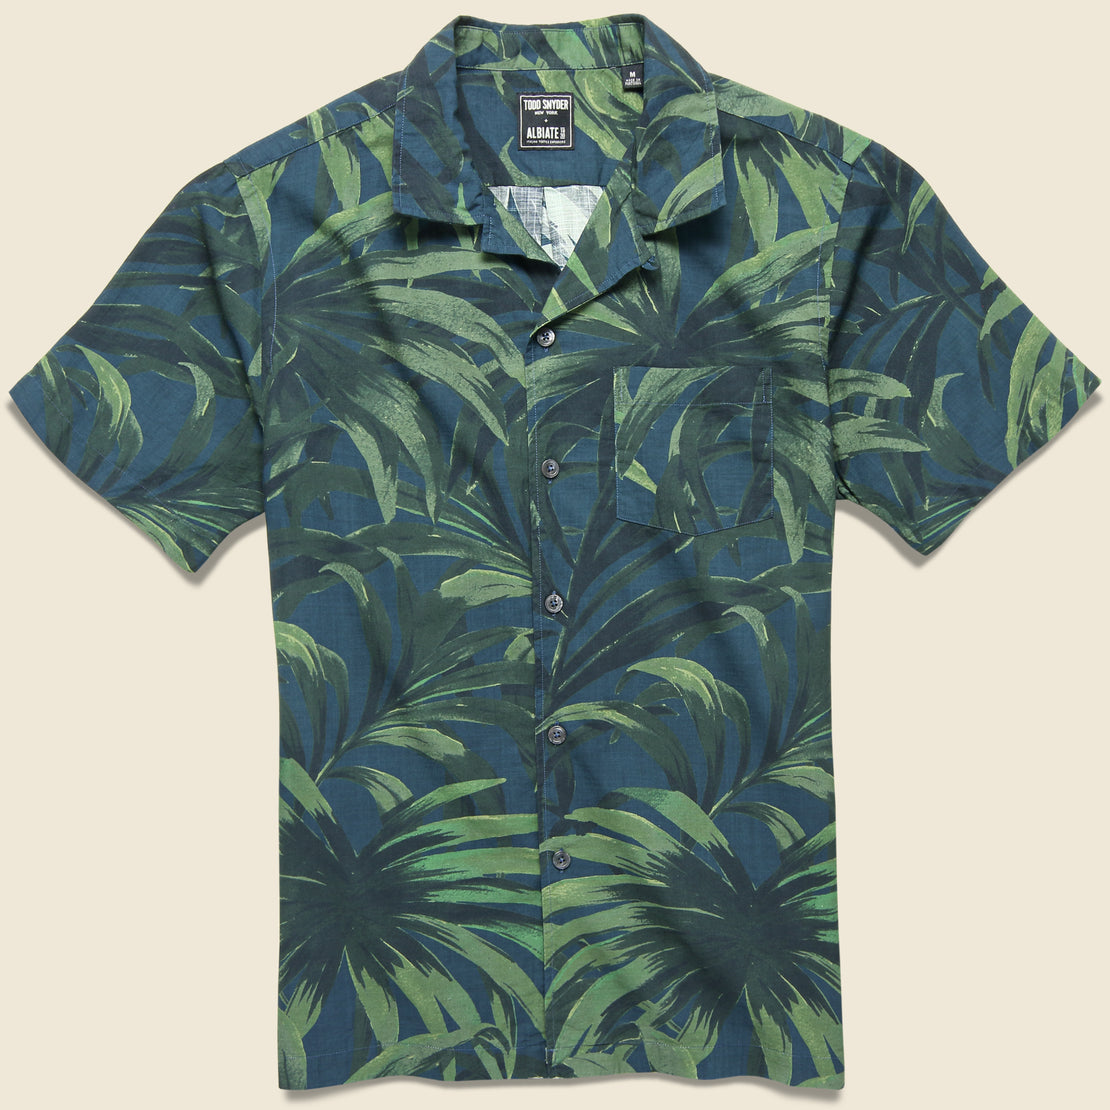 Todd Snyder Palm Print Shirt - Olive